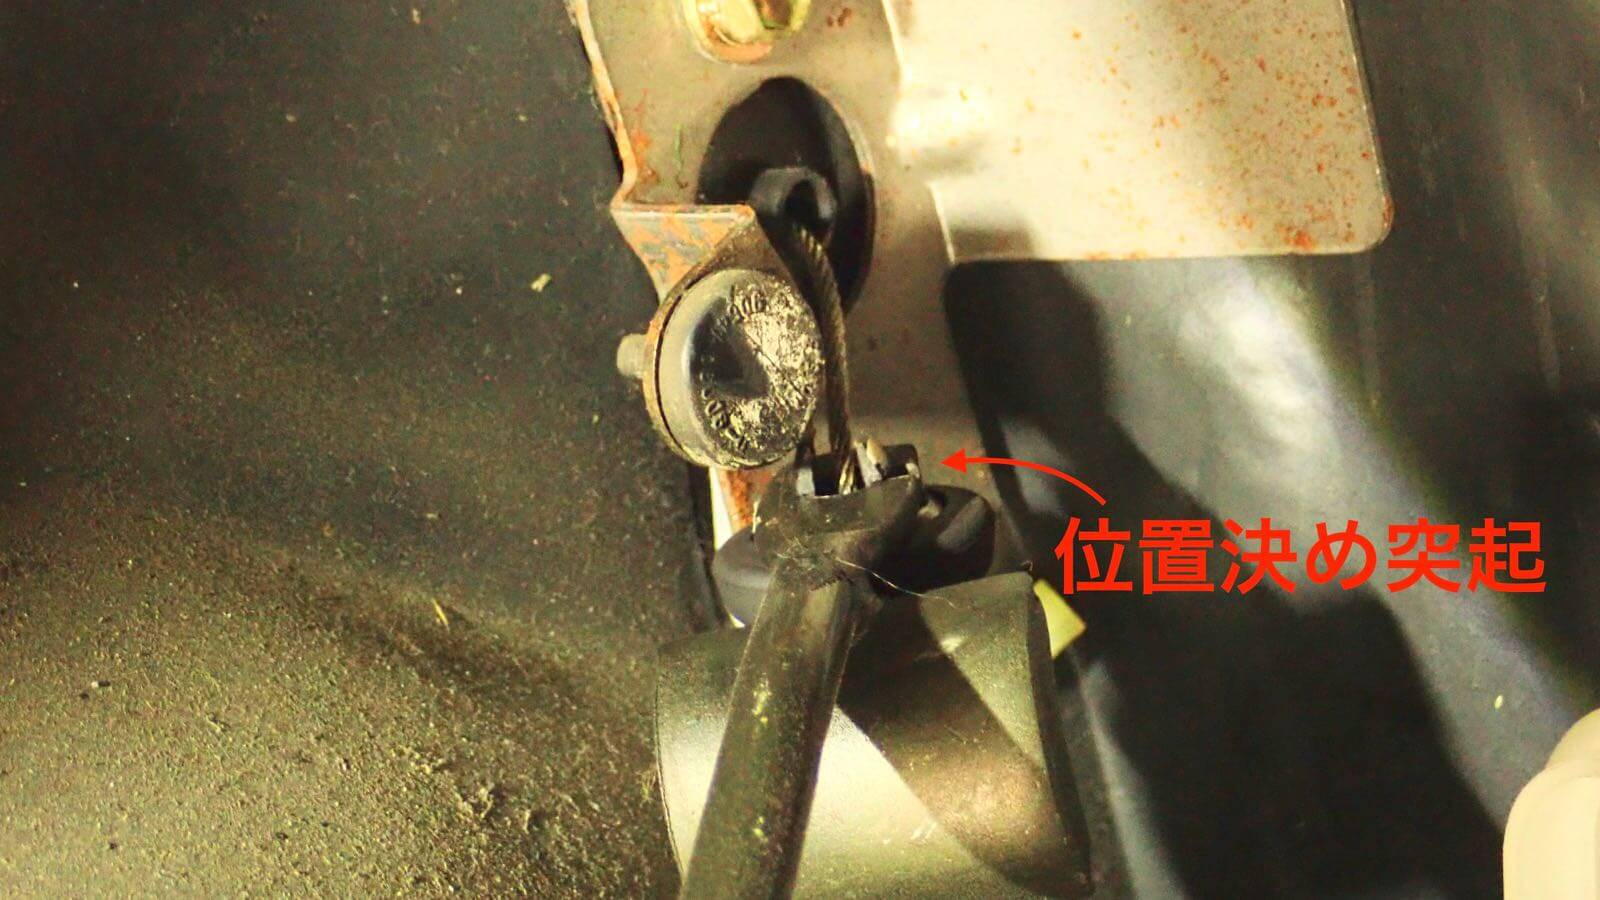 0214 Toyota genuine Aluminum pedal installation method 25